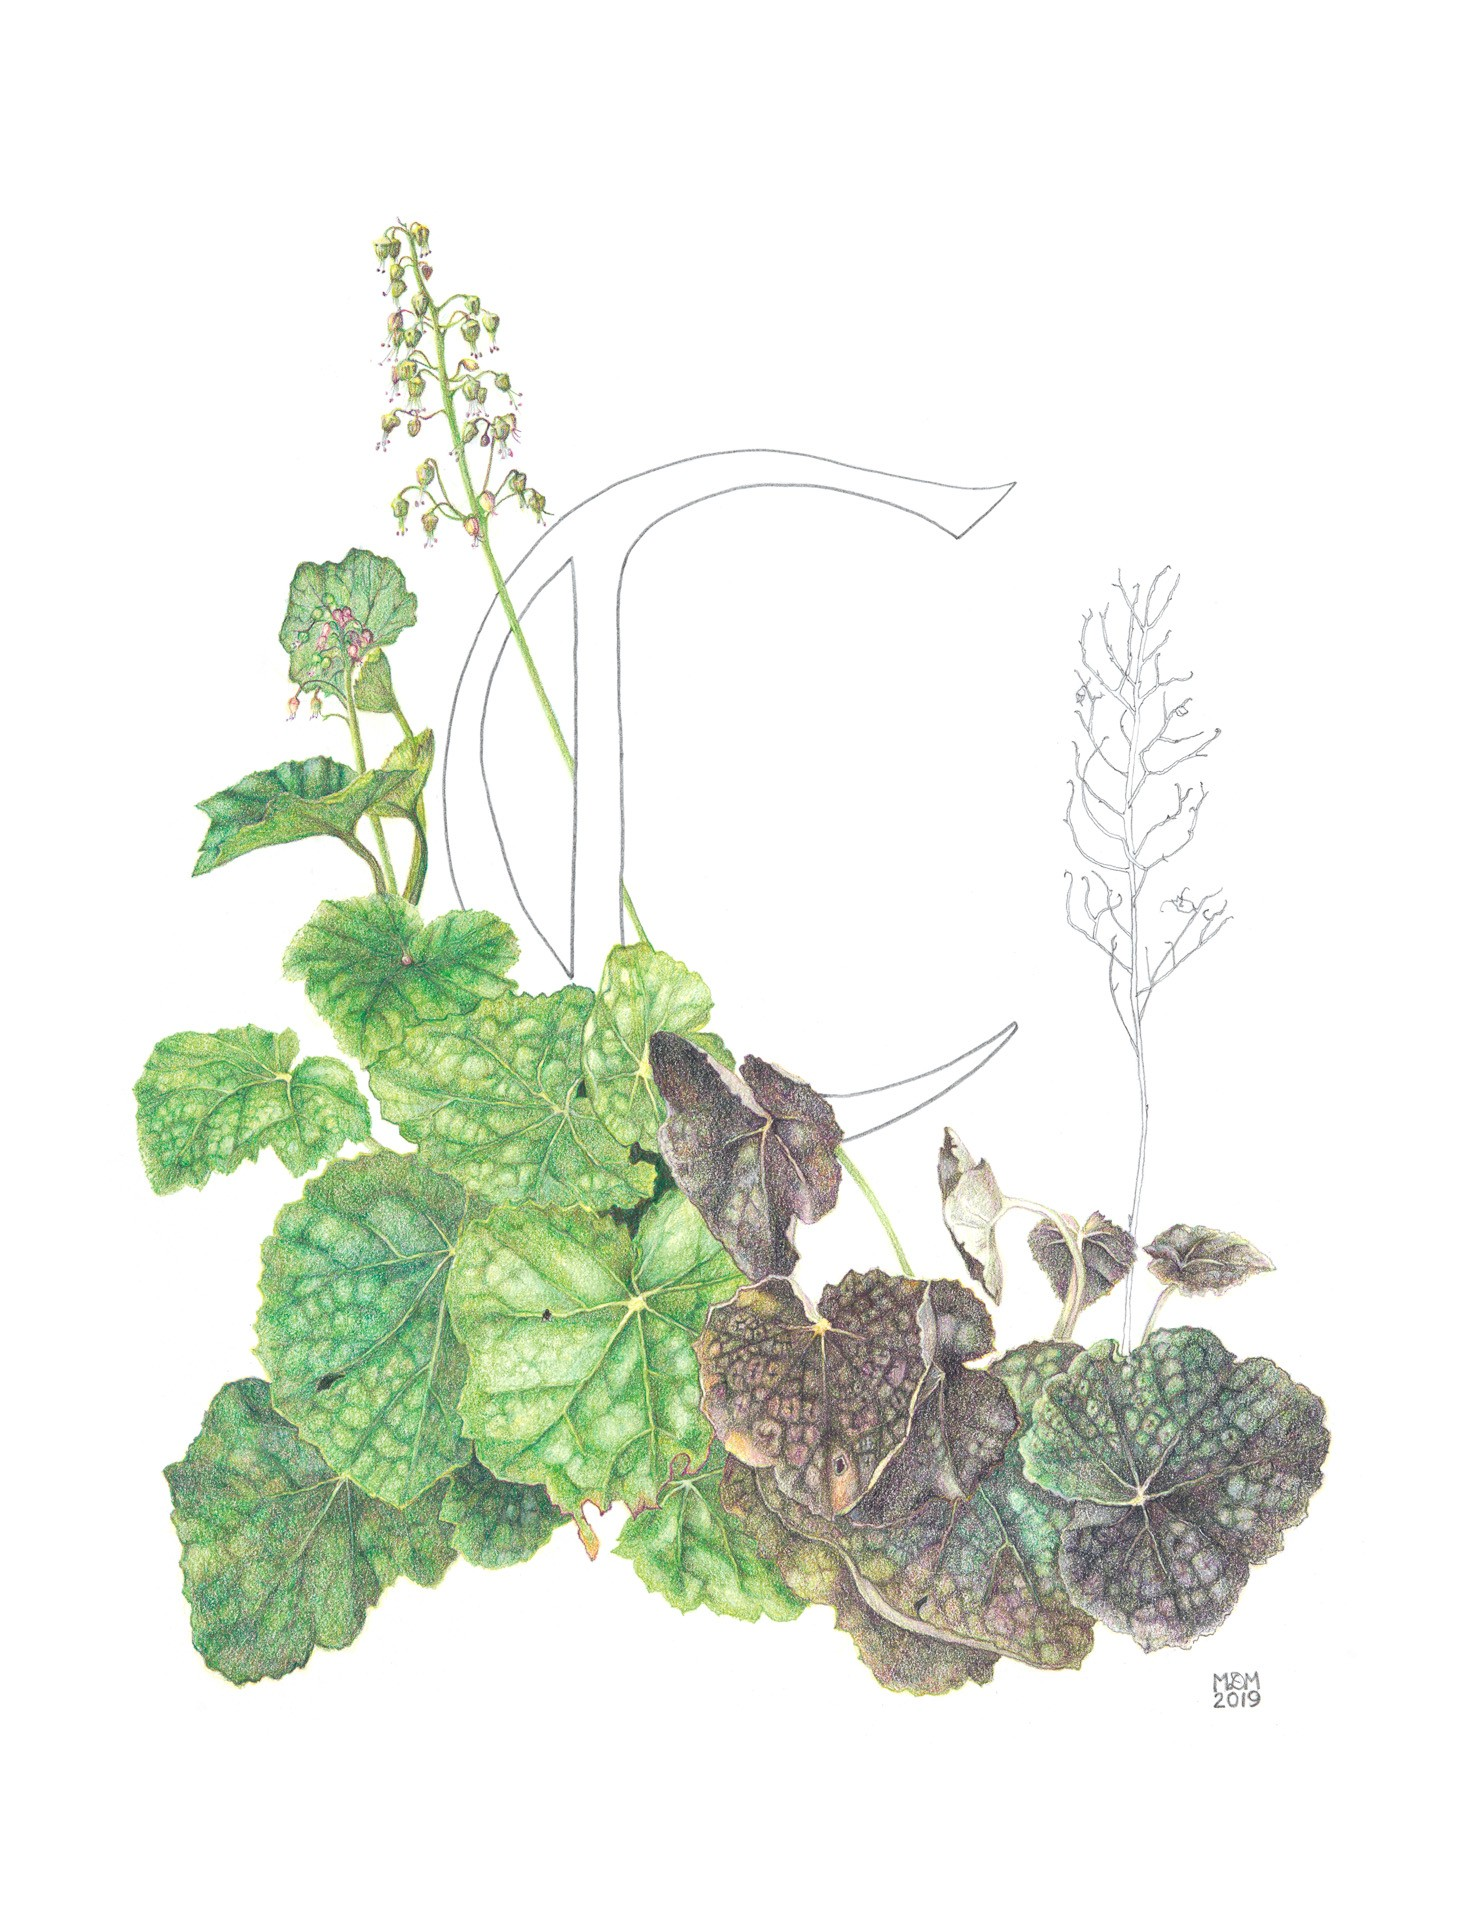 Coral bells, Heuchera  americana, Colored pencil by Marguerite Matz